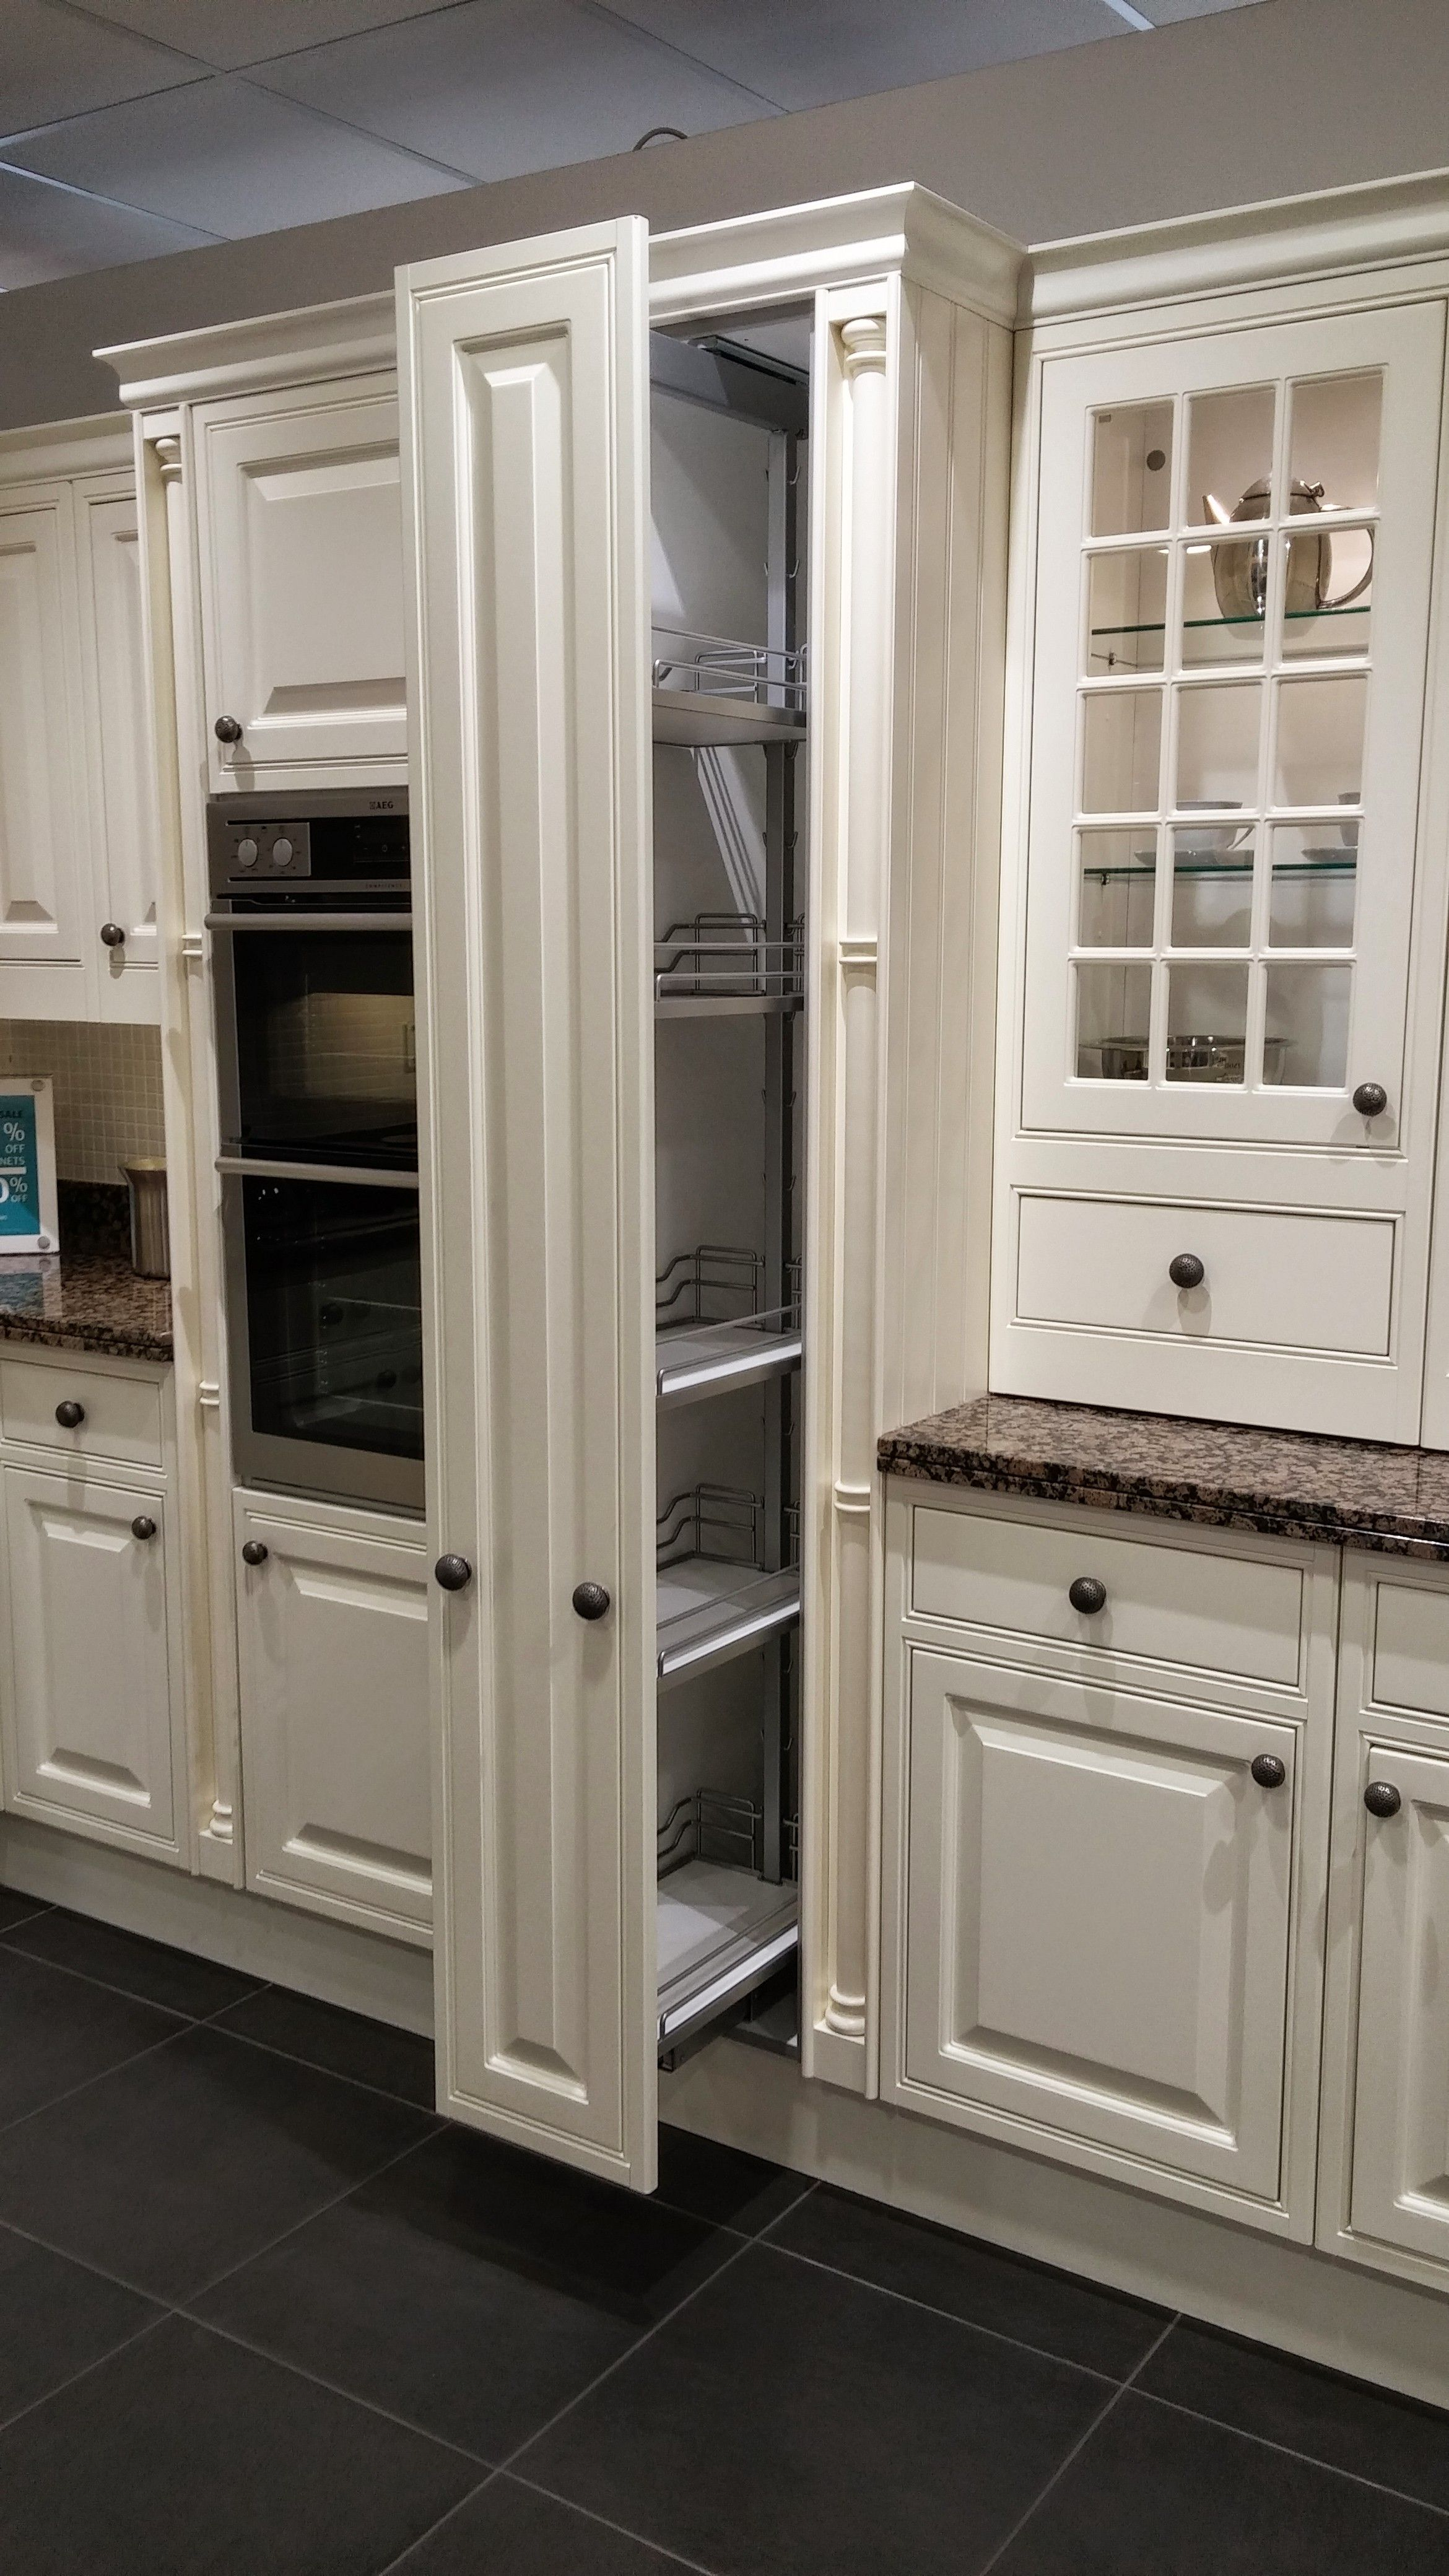 narrow pullout larder (tall, thin pulloutrack cupboard